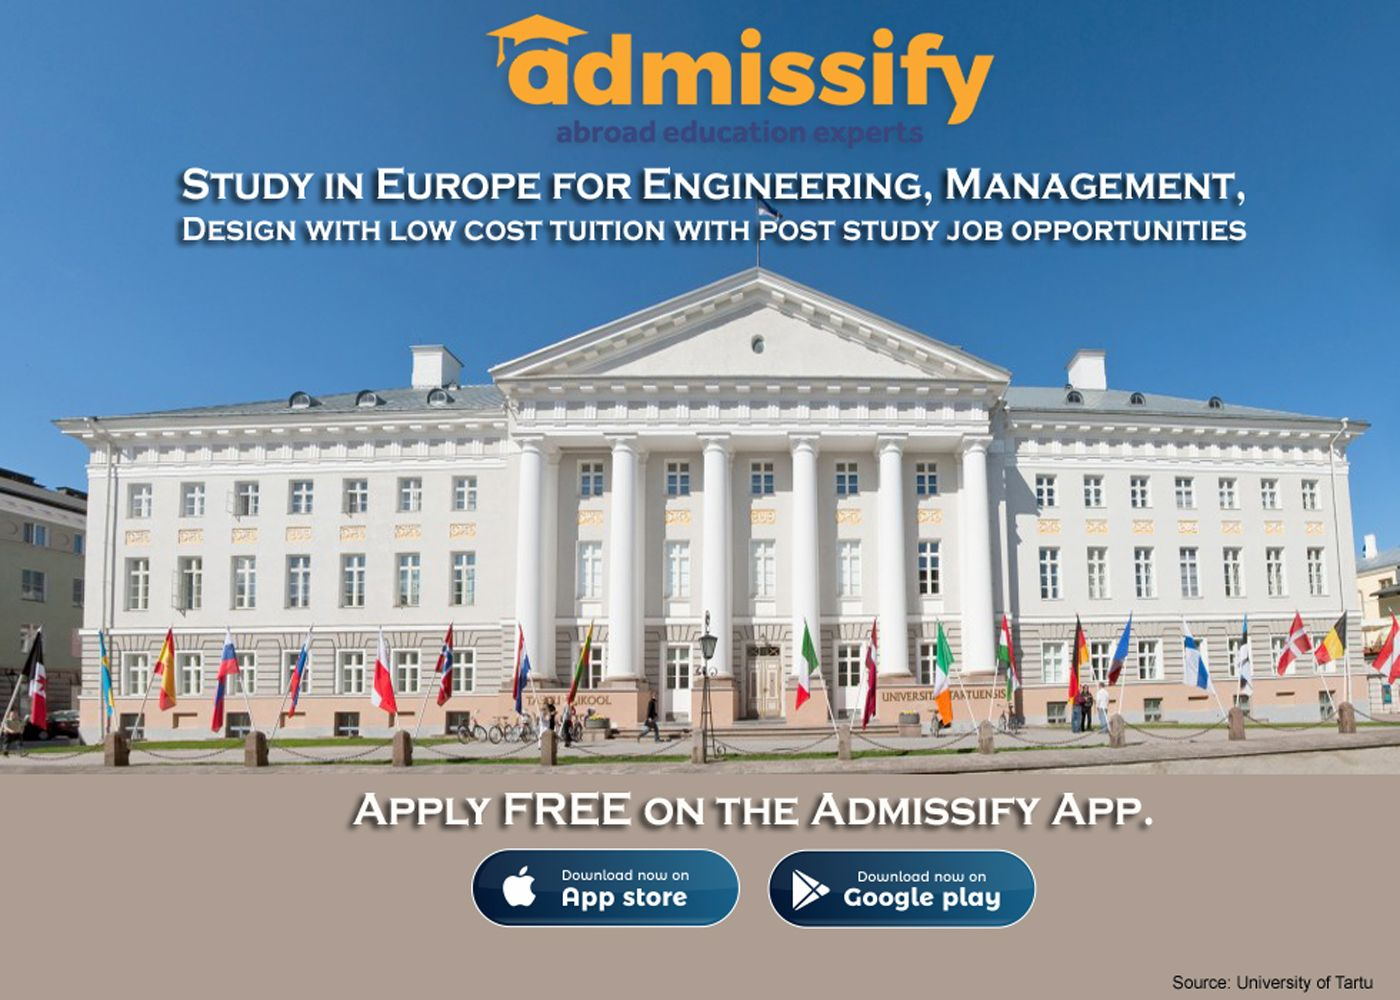 Study in Europe for Engineering, Admissify Overseas